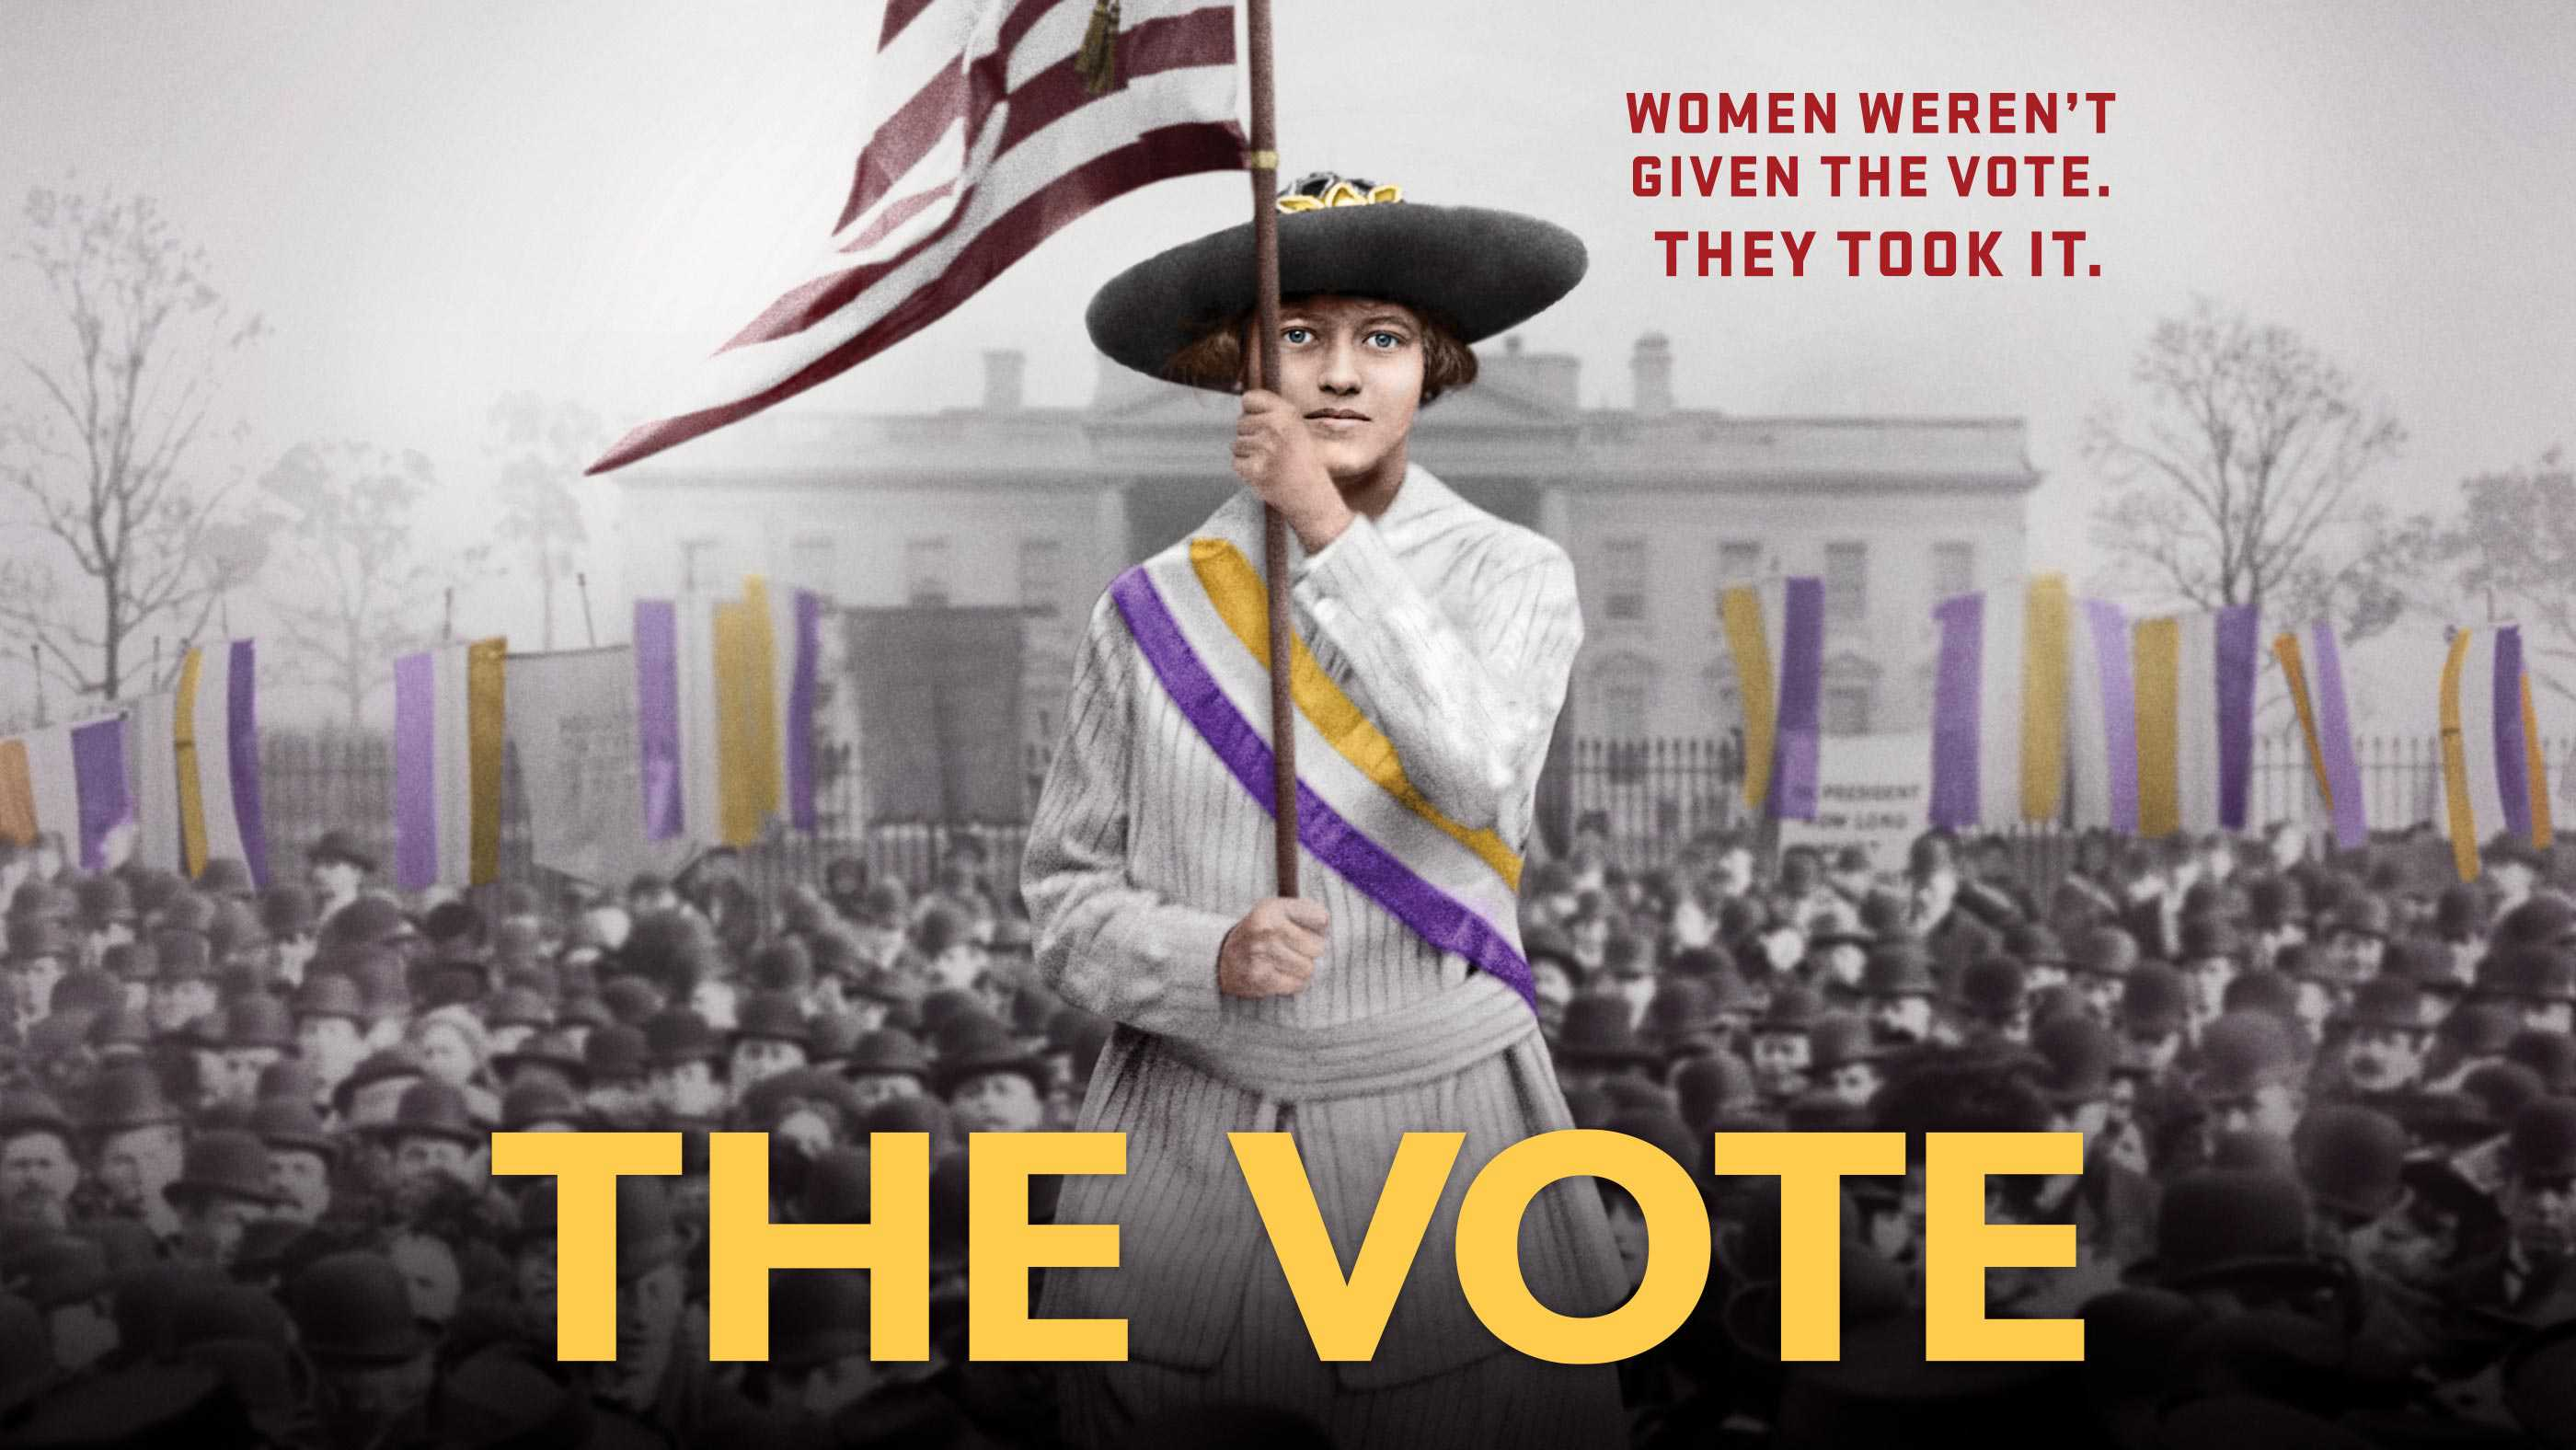 """Image of a suffragist holding the flag of the United States outside the White House with the phrase """"Women weren't given the vote. They took it"""" superimposed on the image. Image used on the PBS website to promote the documentary, The Vote."""